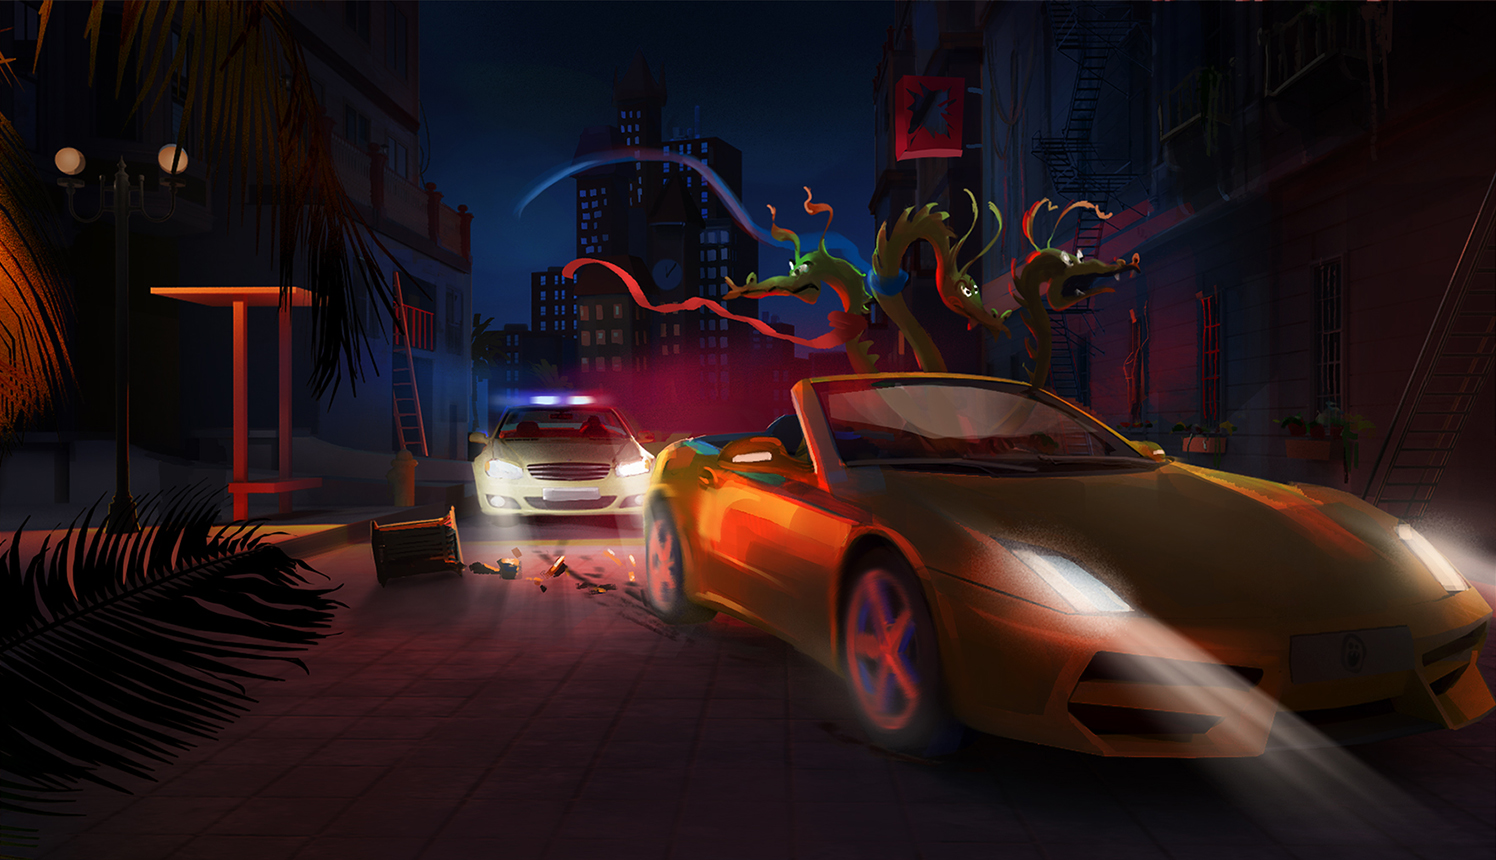 Cars-Dragon_danger_www.pigareva.com